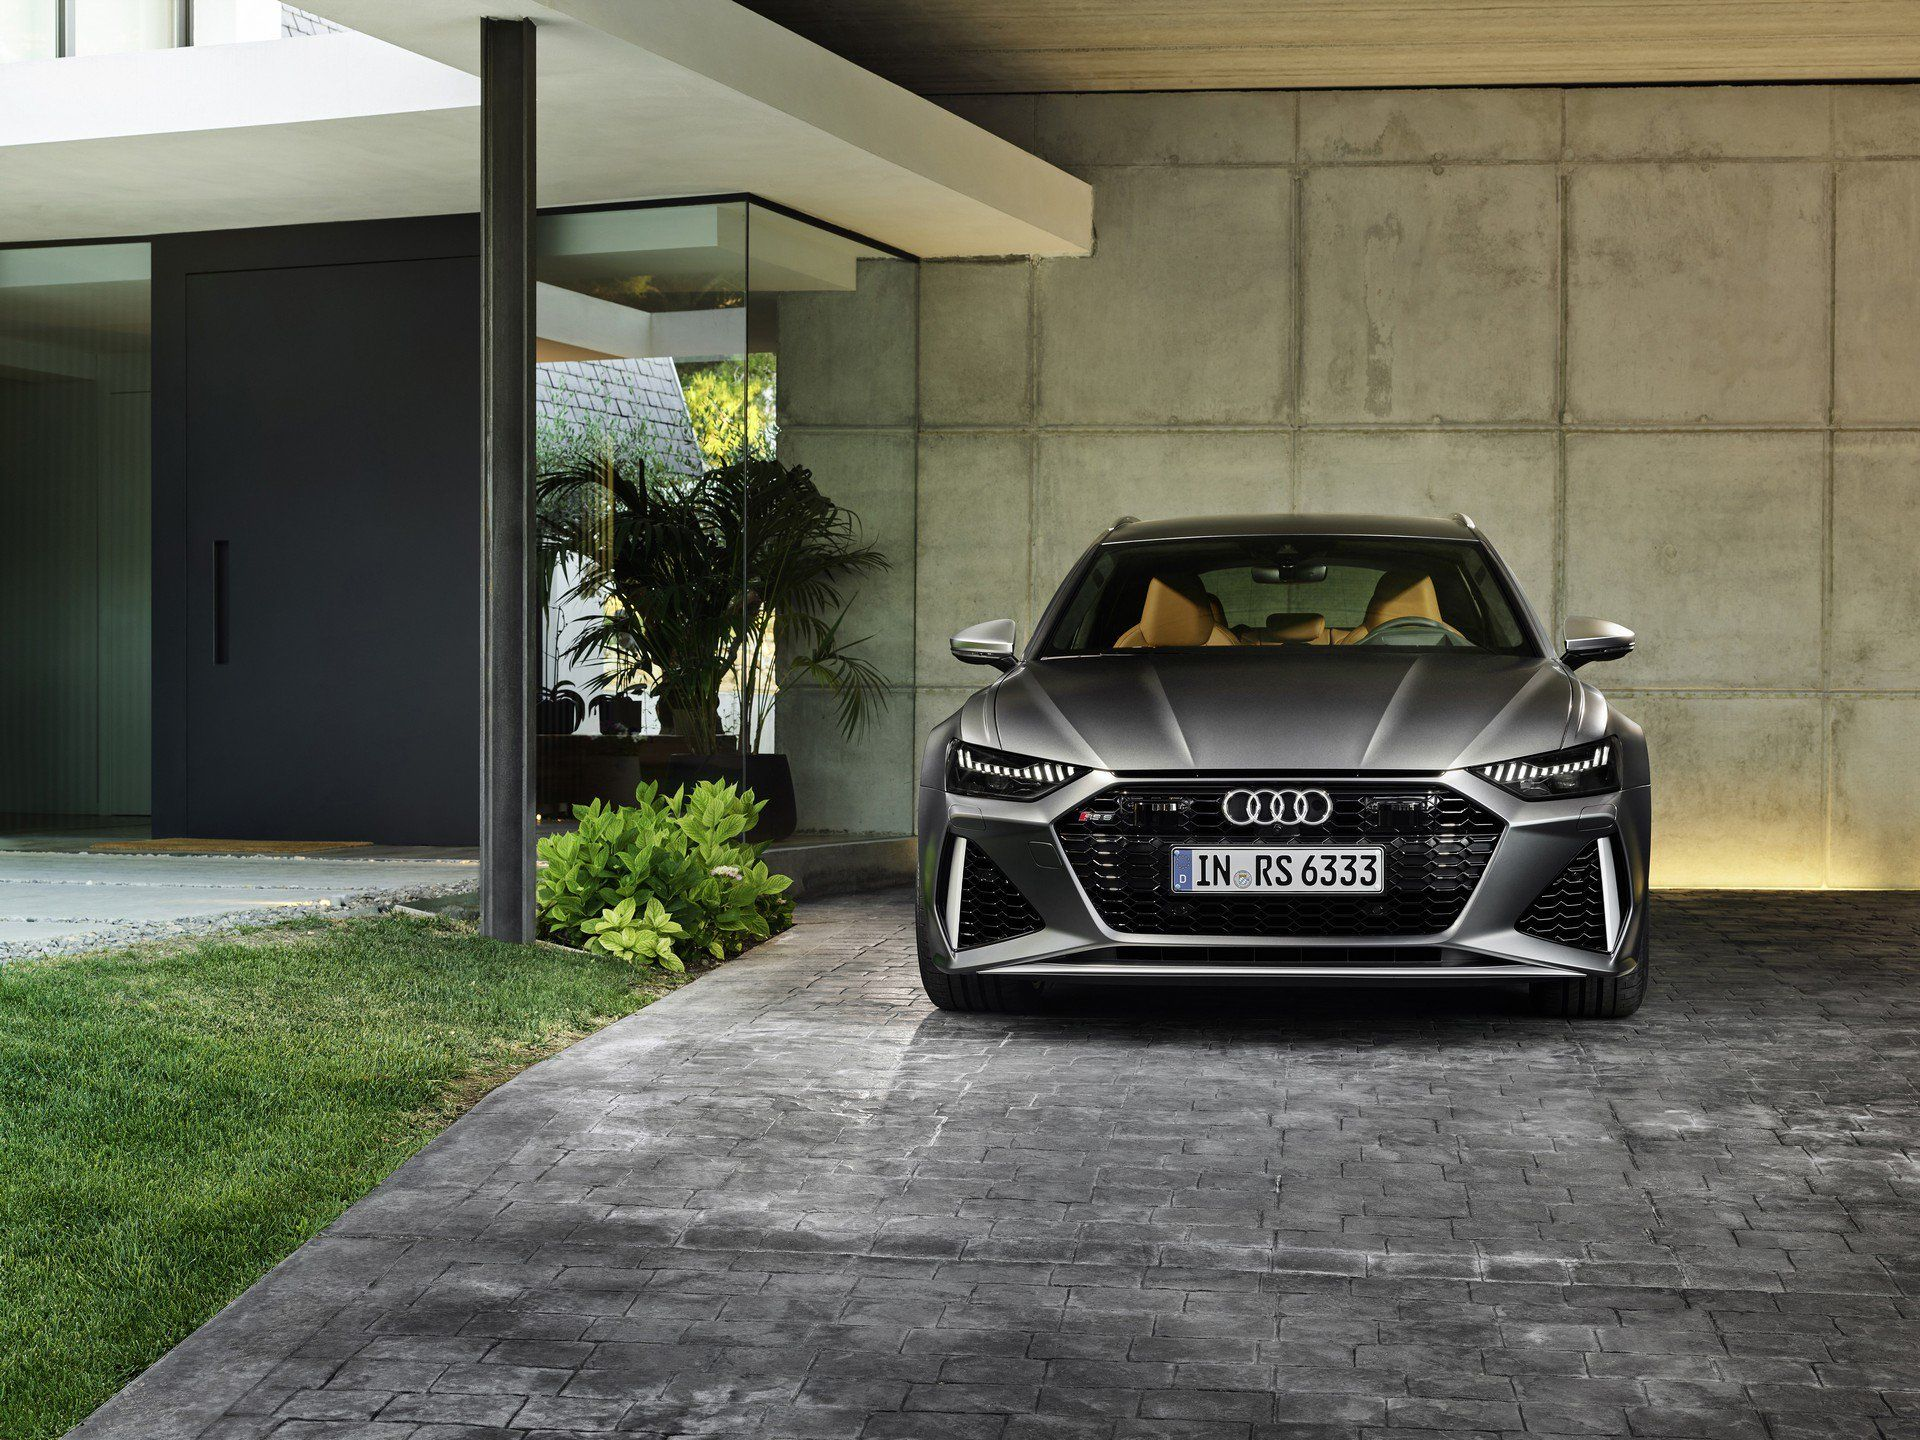 2020 Audi Rs 6 Avant Revealed With 592 Hp And It S Coming To America Carscoops Audi Rs Audi Rs6 Audi Wagon